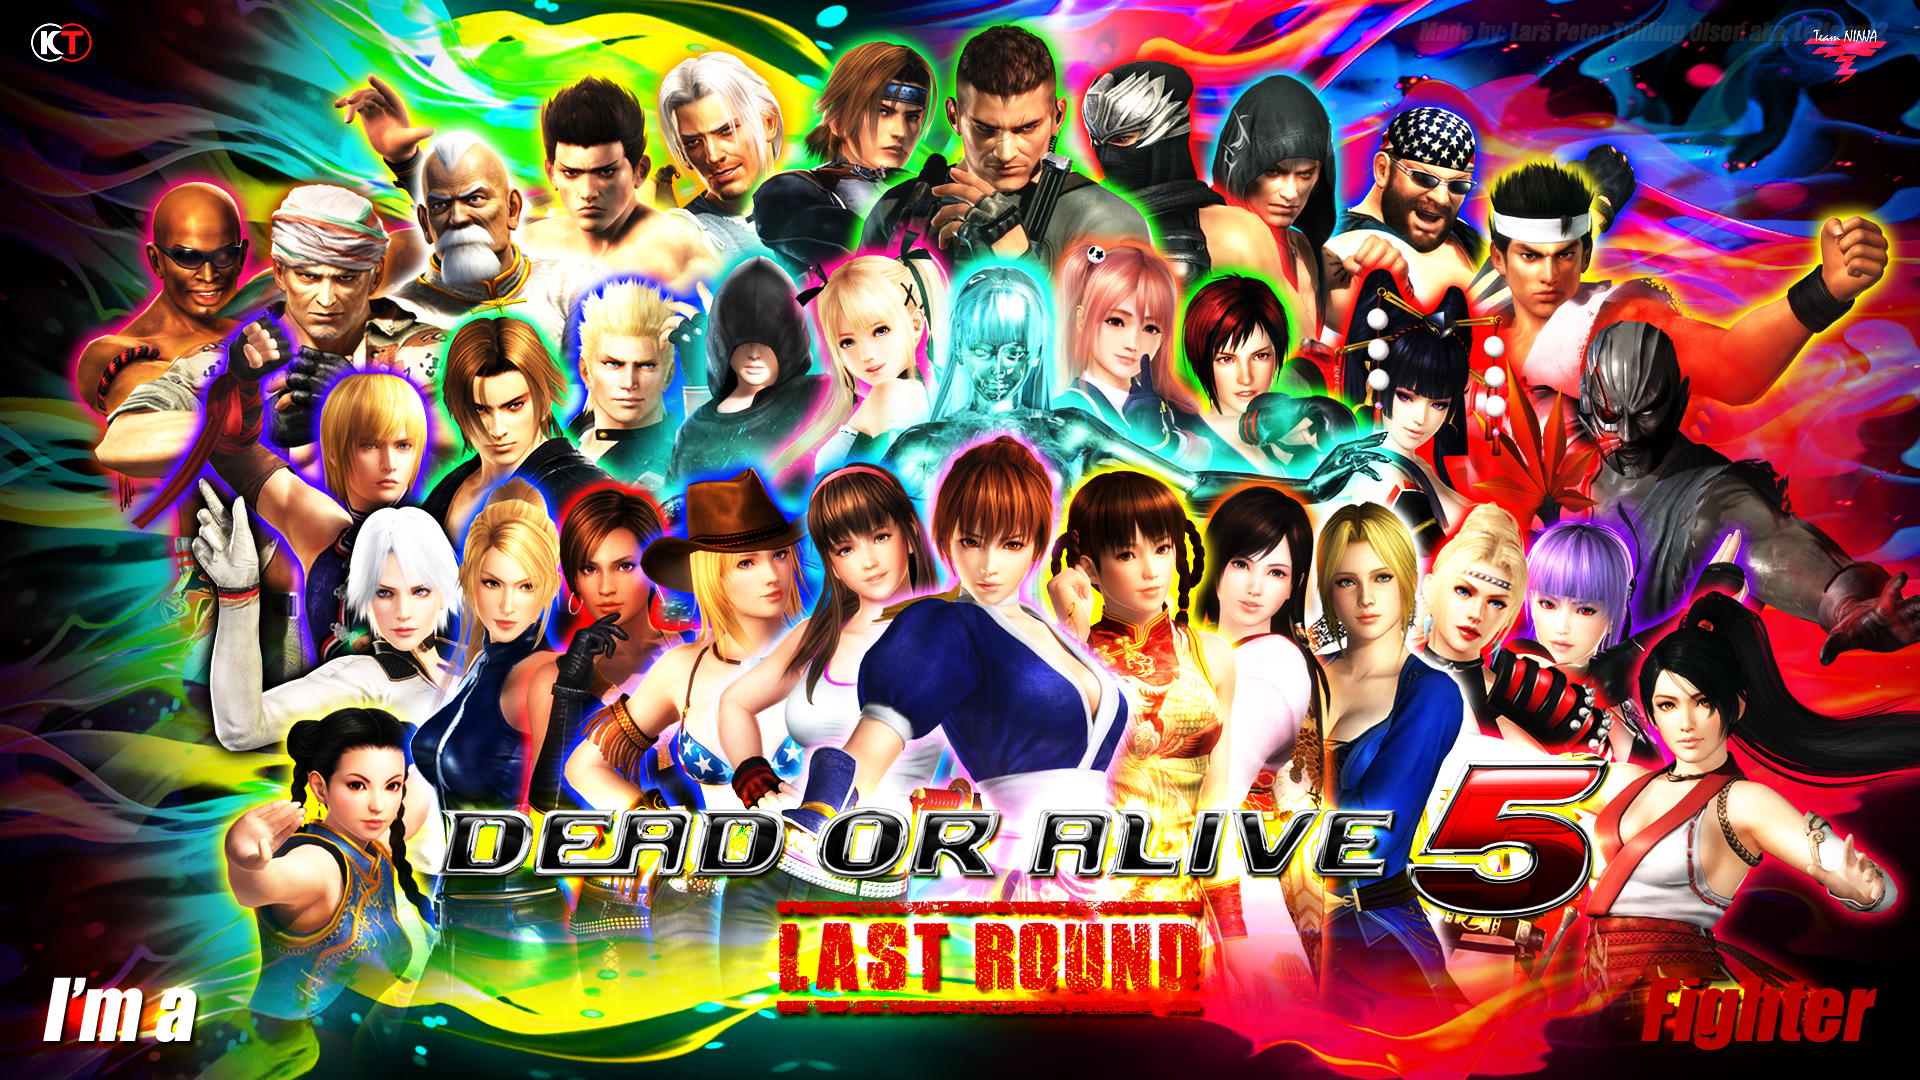 Dead Or Alive 5 Last Round Character Wallpaper By Leifang12 On